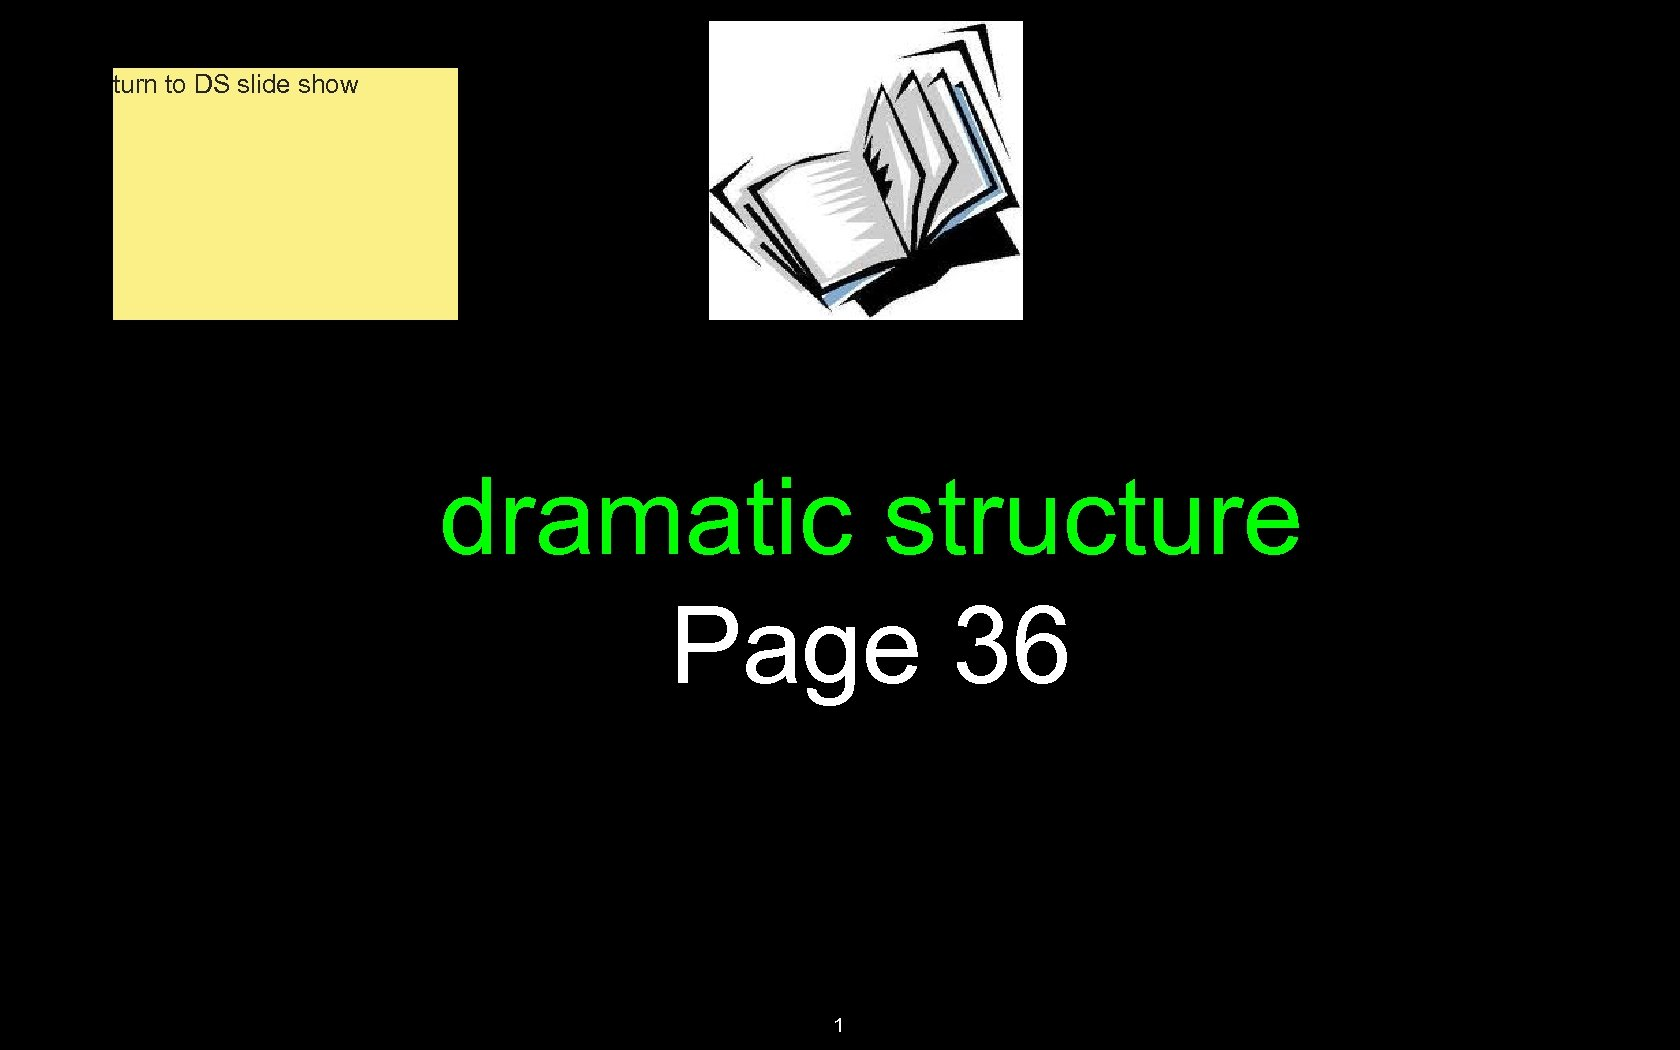 turn to DS slide show dramatic structure Page 36 1